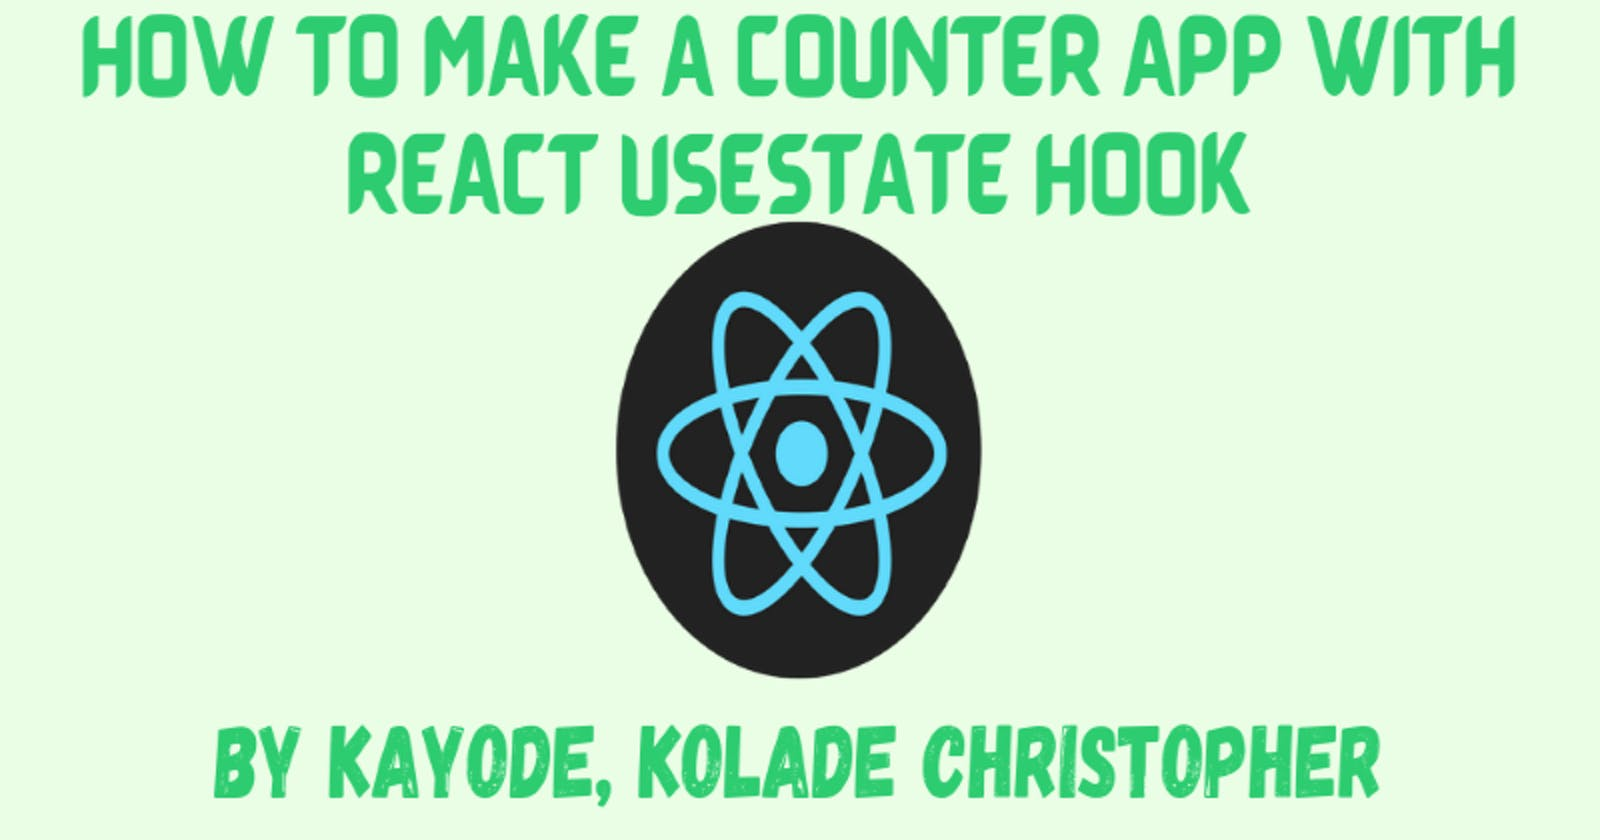 How To Make A Counter Application With React Usestate Hook